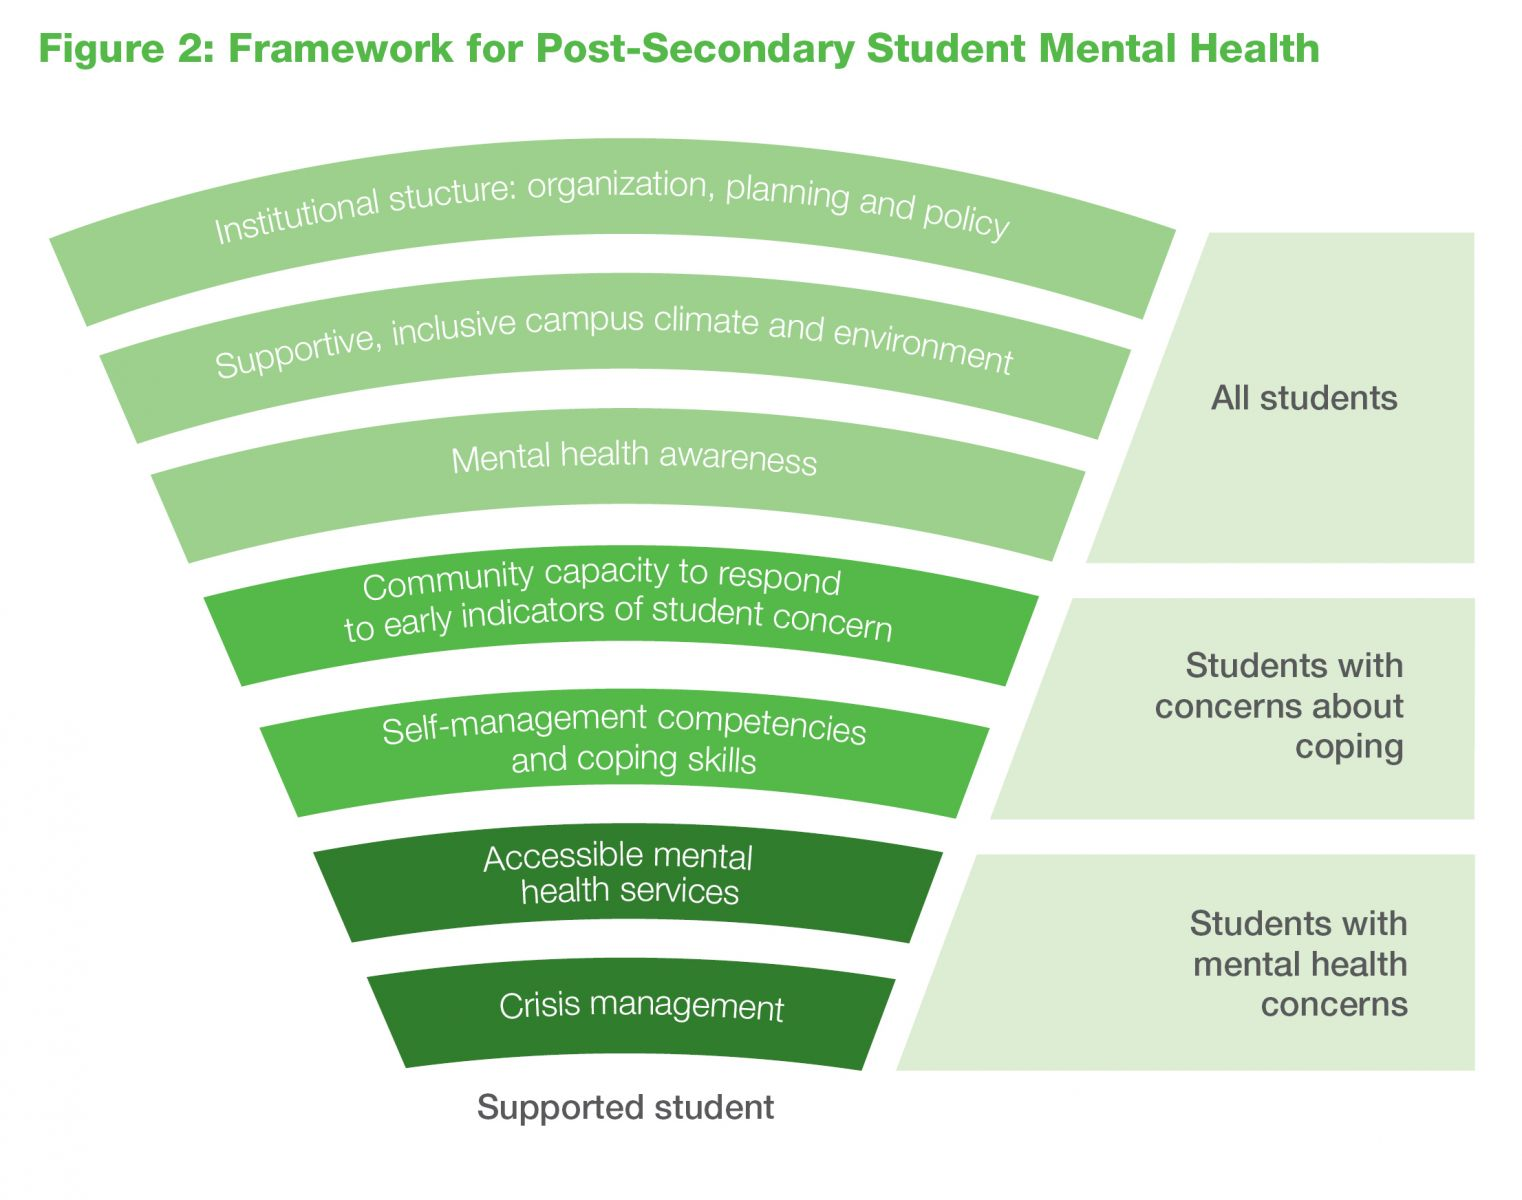 Post-Secondary Student Mental Health: Guide to a Systemic Approach